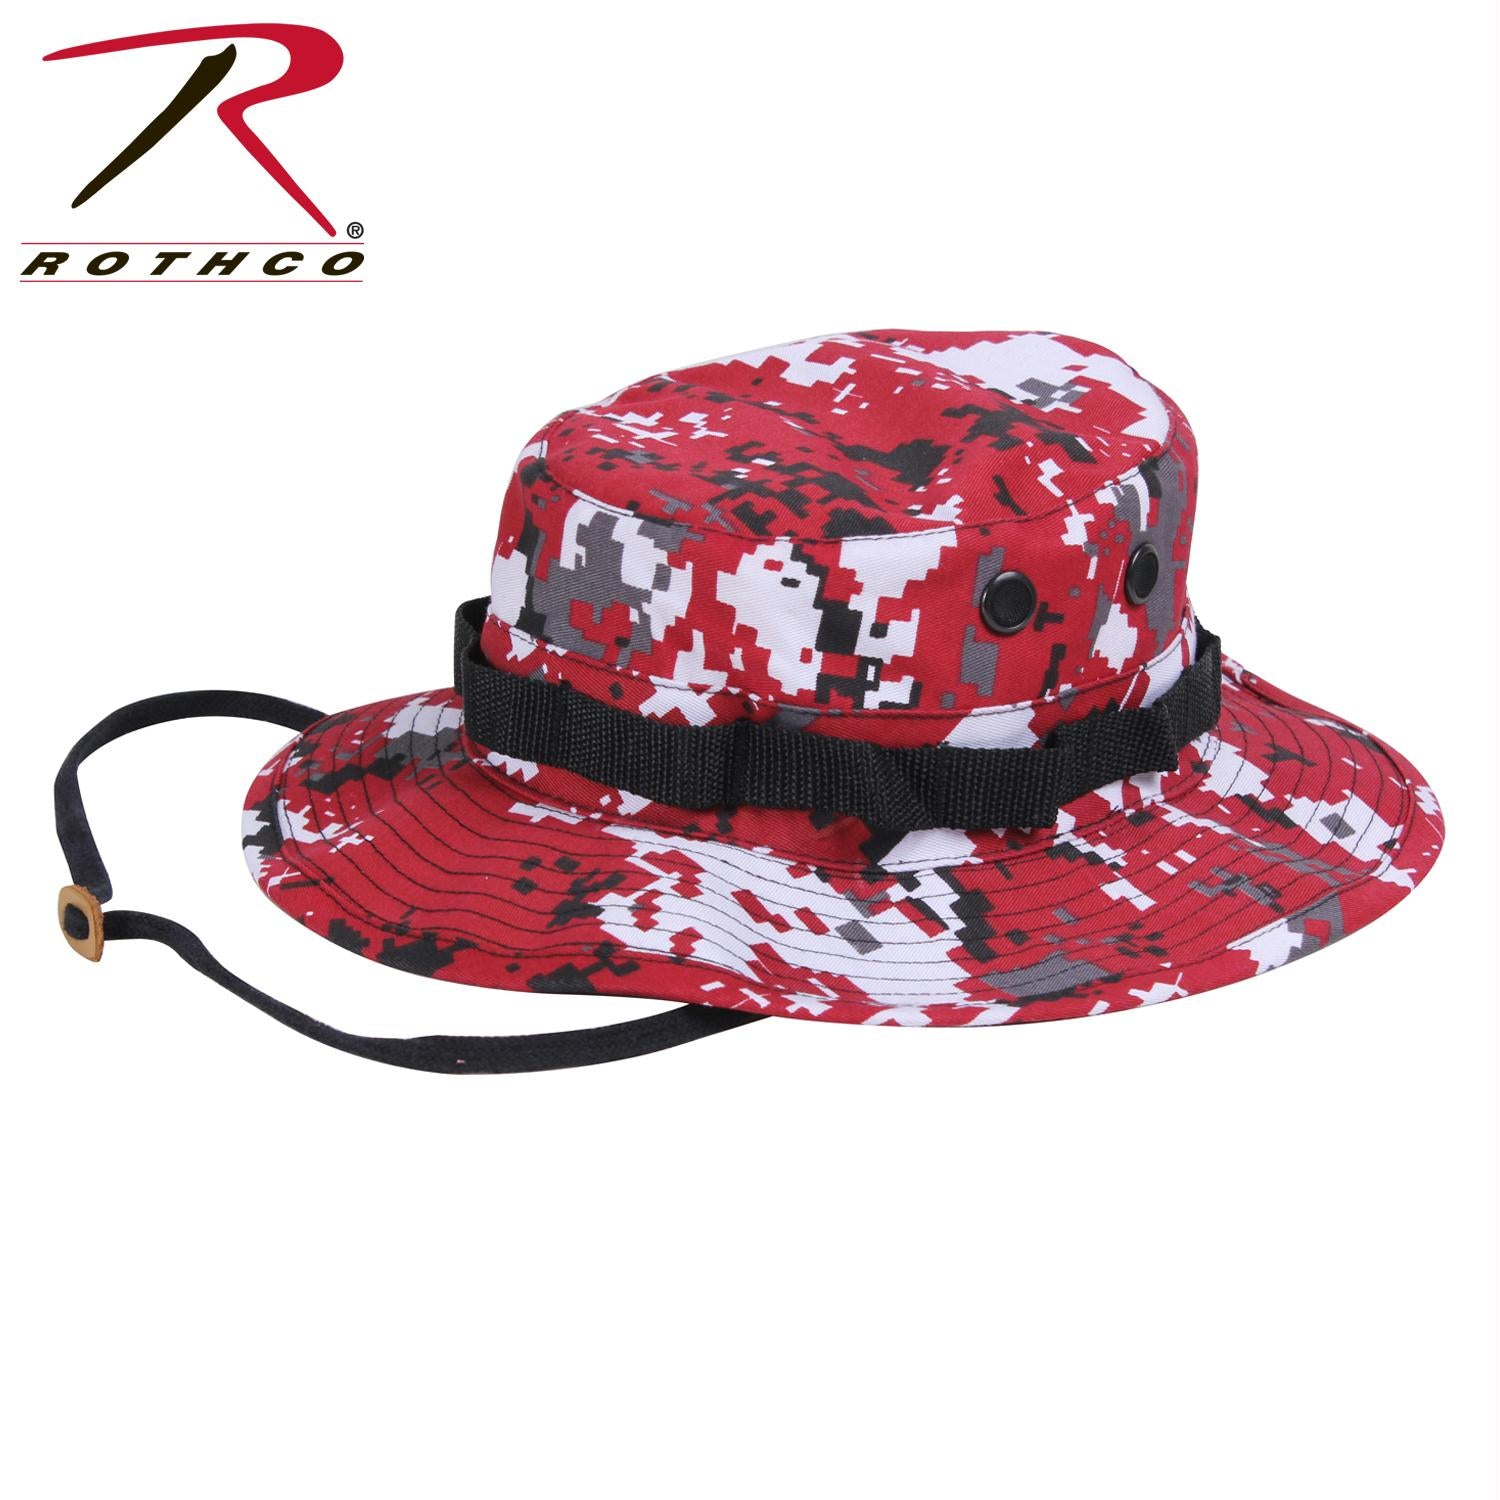 Rothco Digital Camo Boonie Hat - Red Digital Camo / 7 1/4